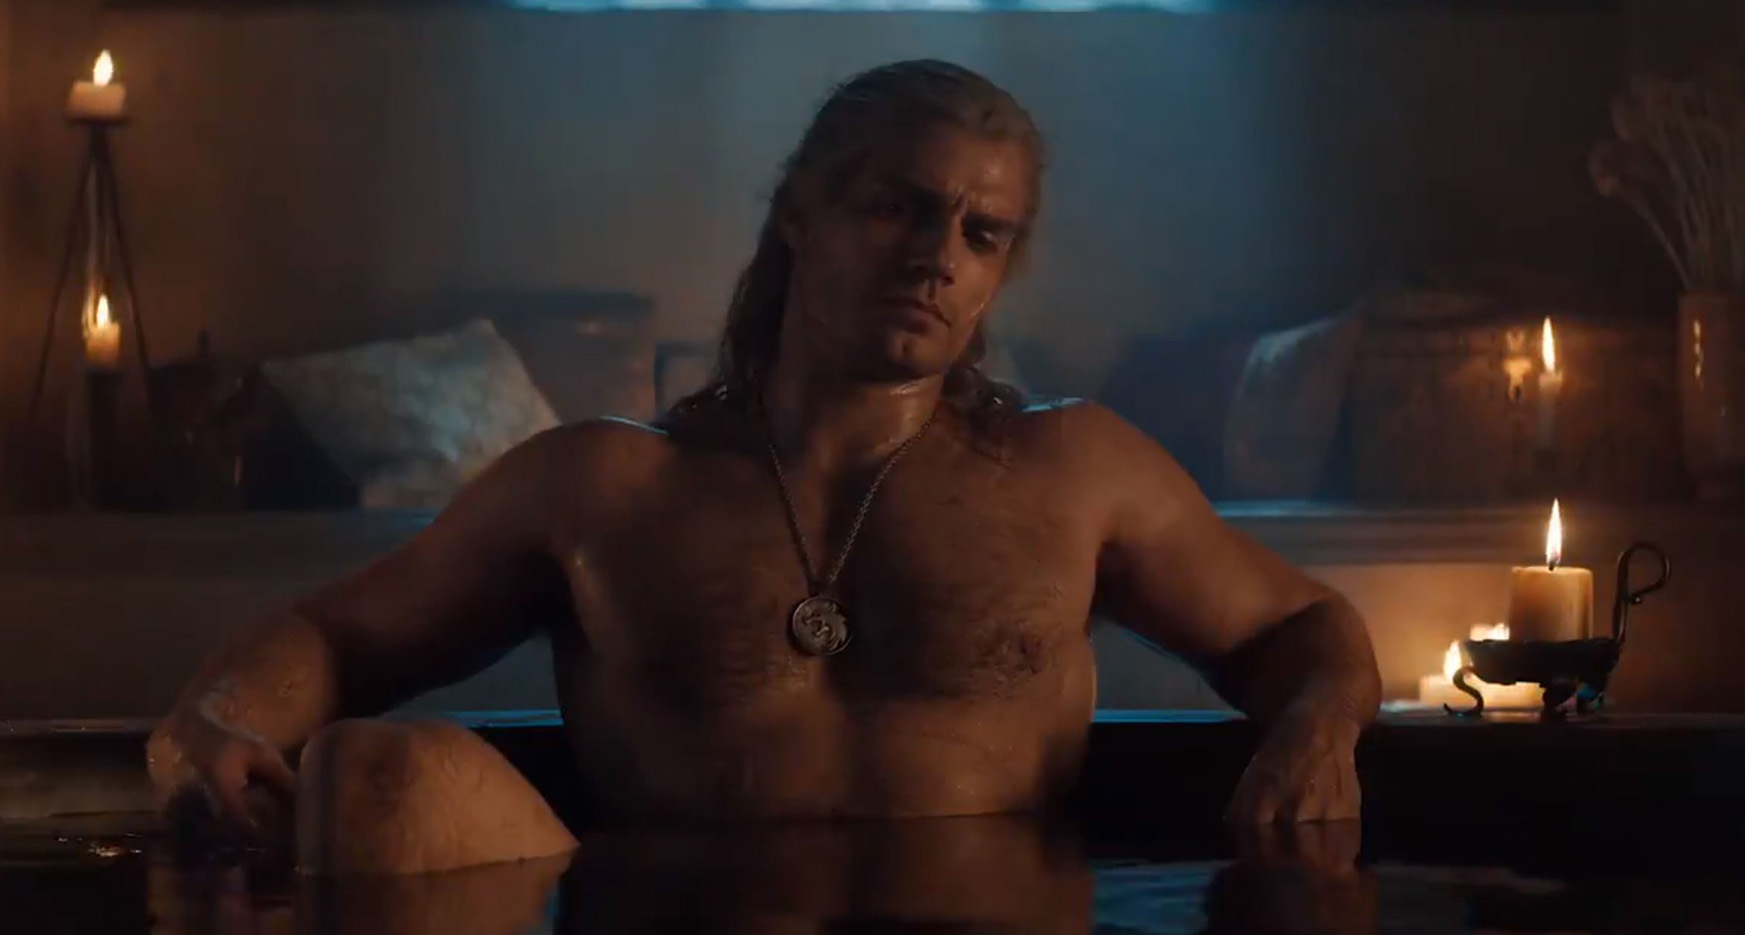 Season 3 of The Witcher on Netflix is definitely probably coming